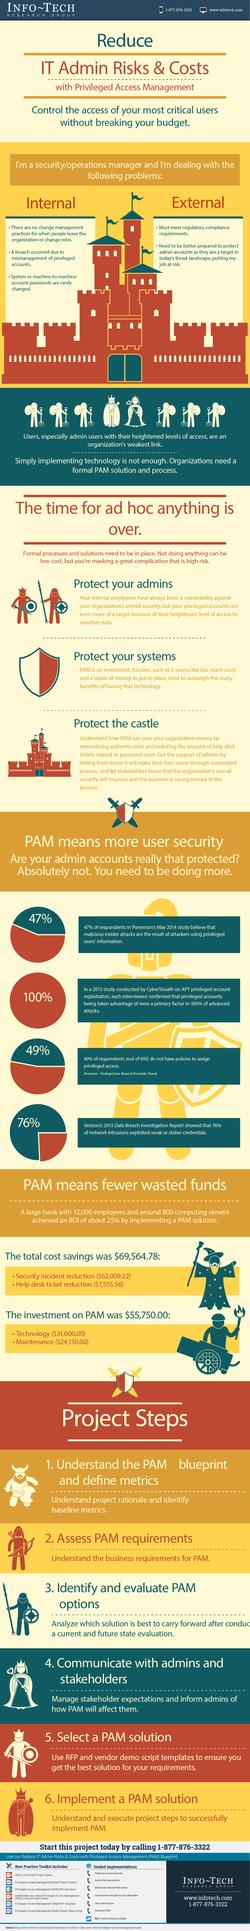 Reduce IT Admin Risks & Costs with Privileged Access Management (PAM) thumbnail